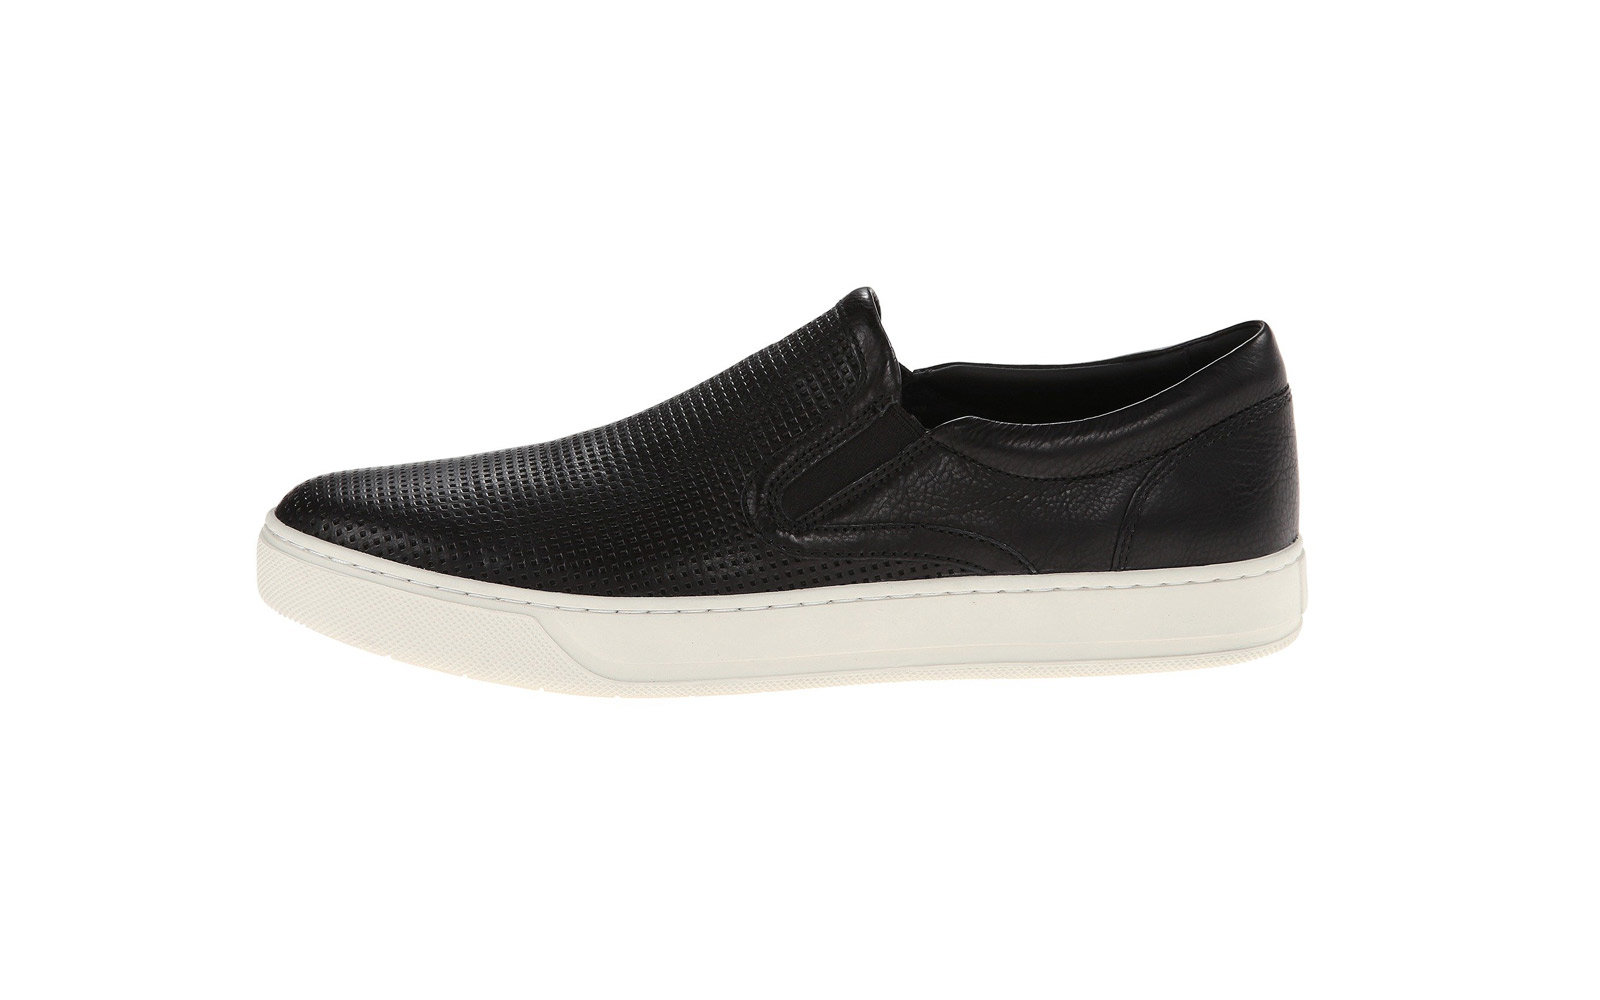 bab41787eb1 Best For  Saving Time at Security. most comfortable shoes for men vince  sneakers